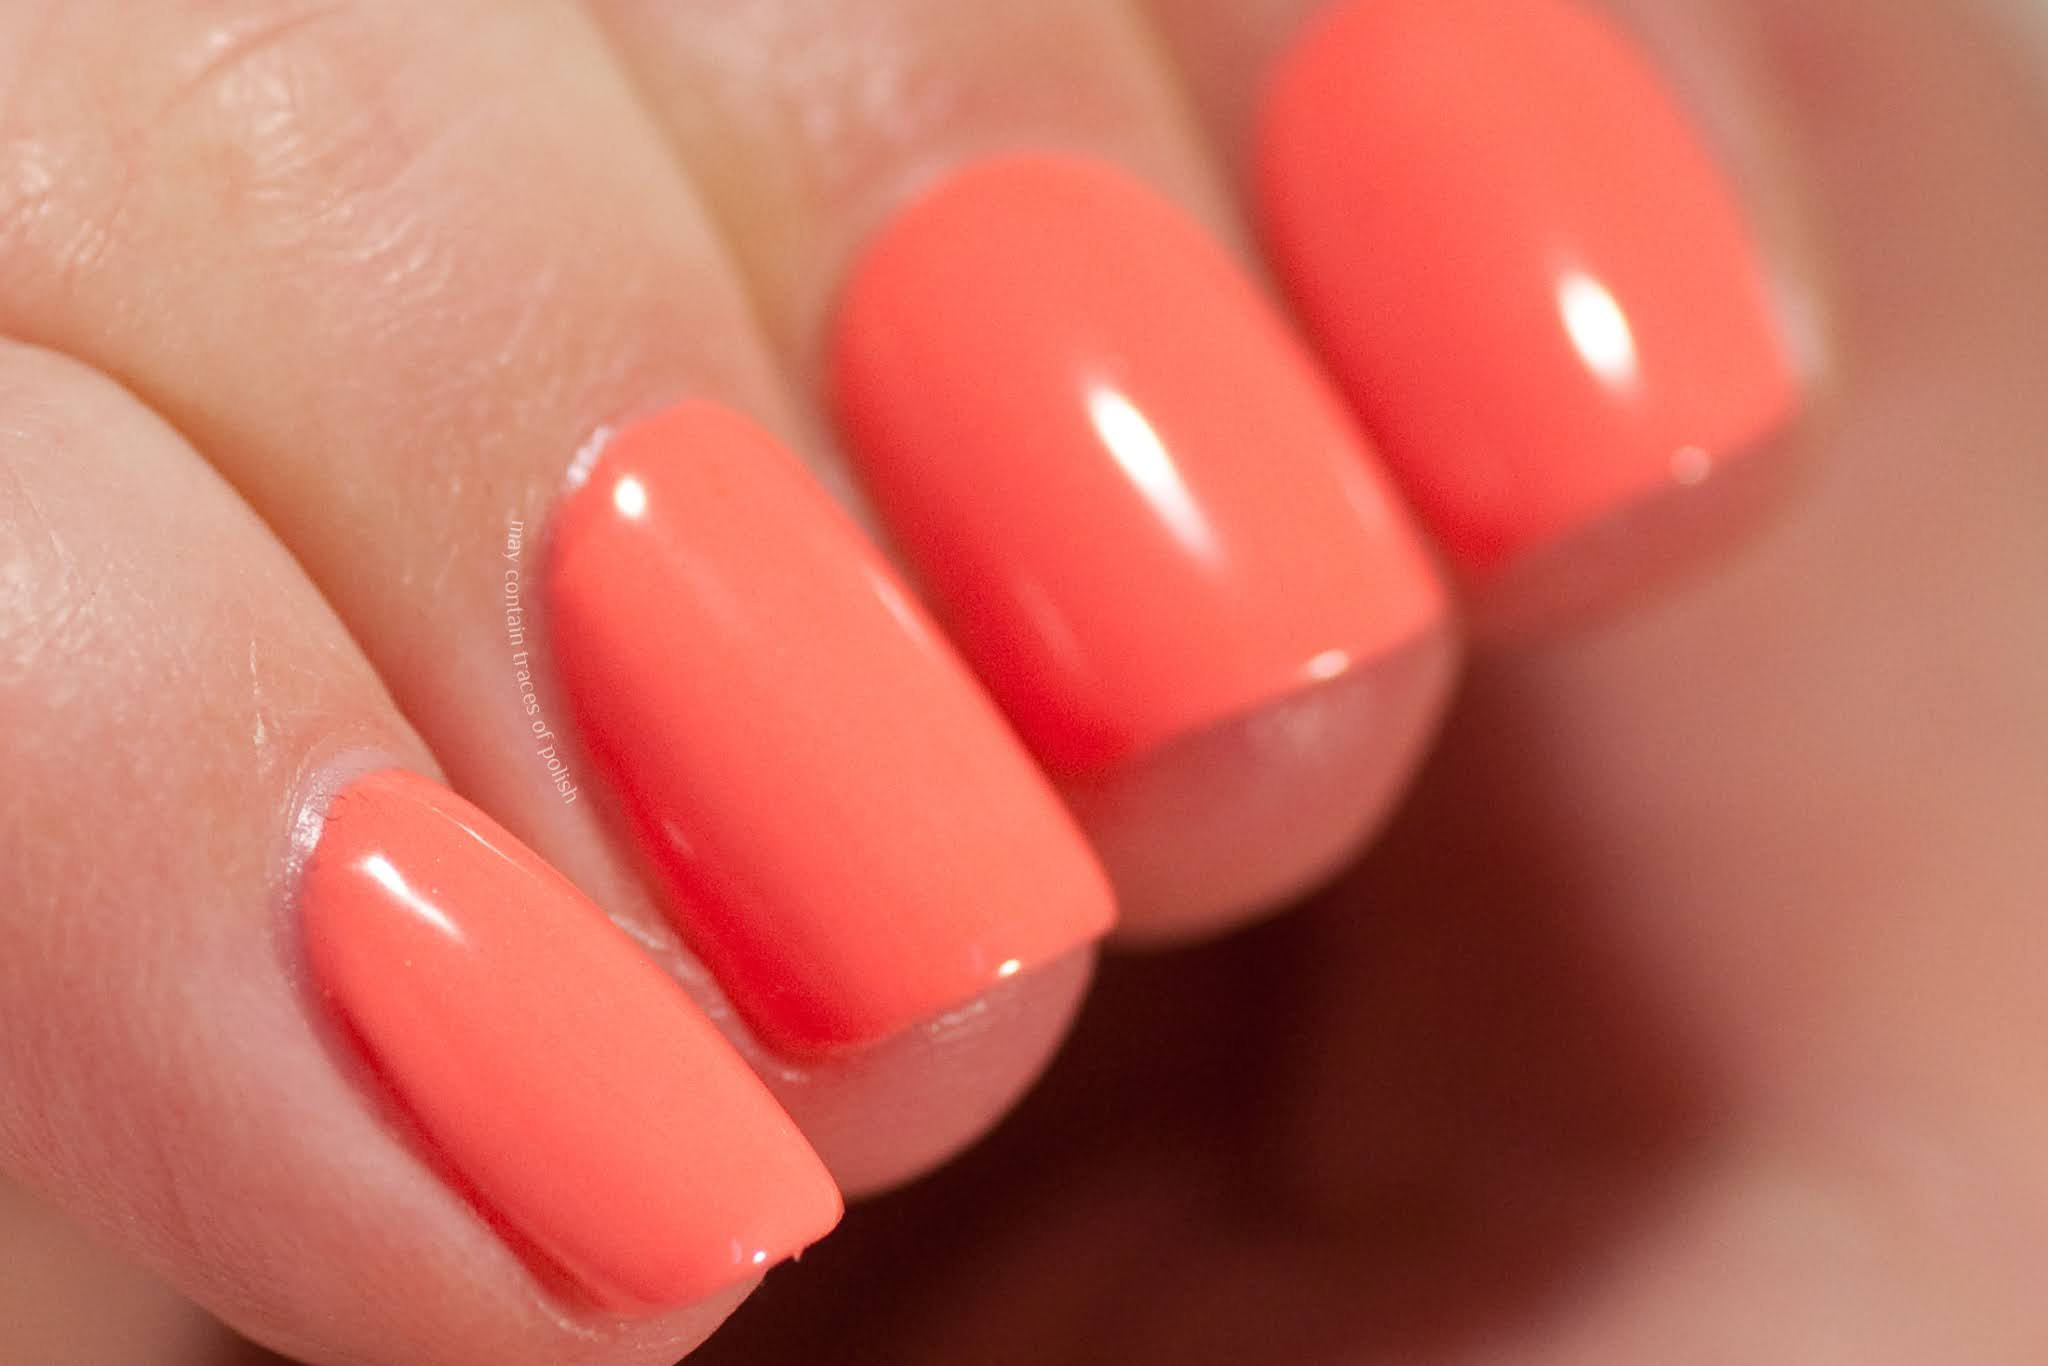 Pink Gellac Swatches - 244 Hawaii Orange